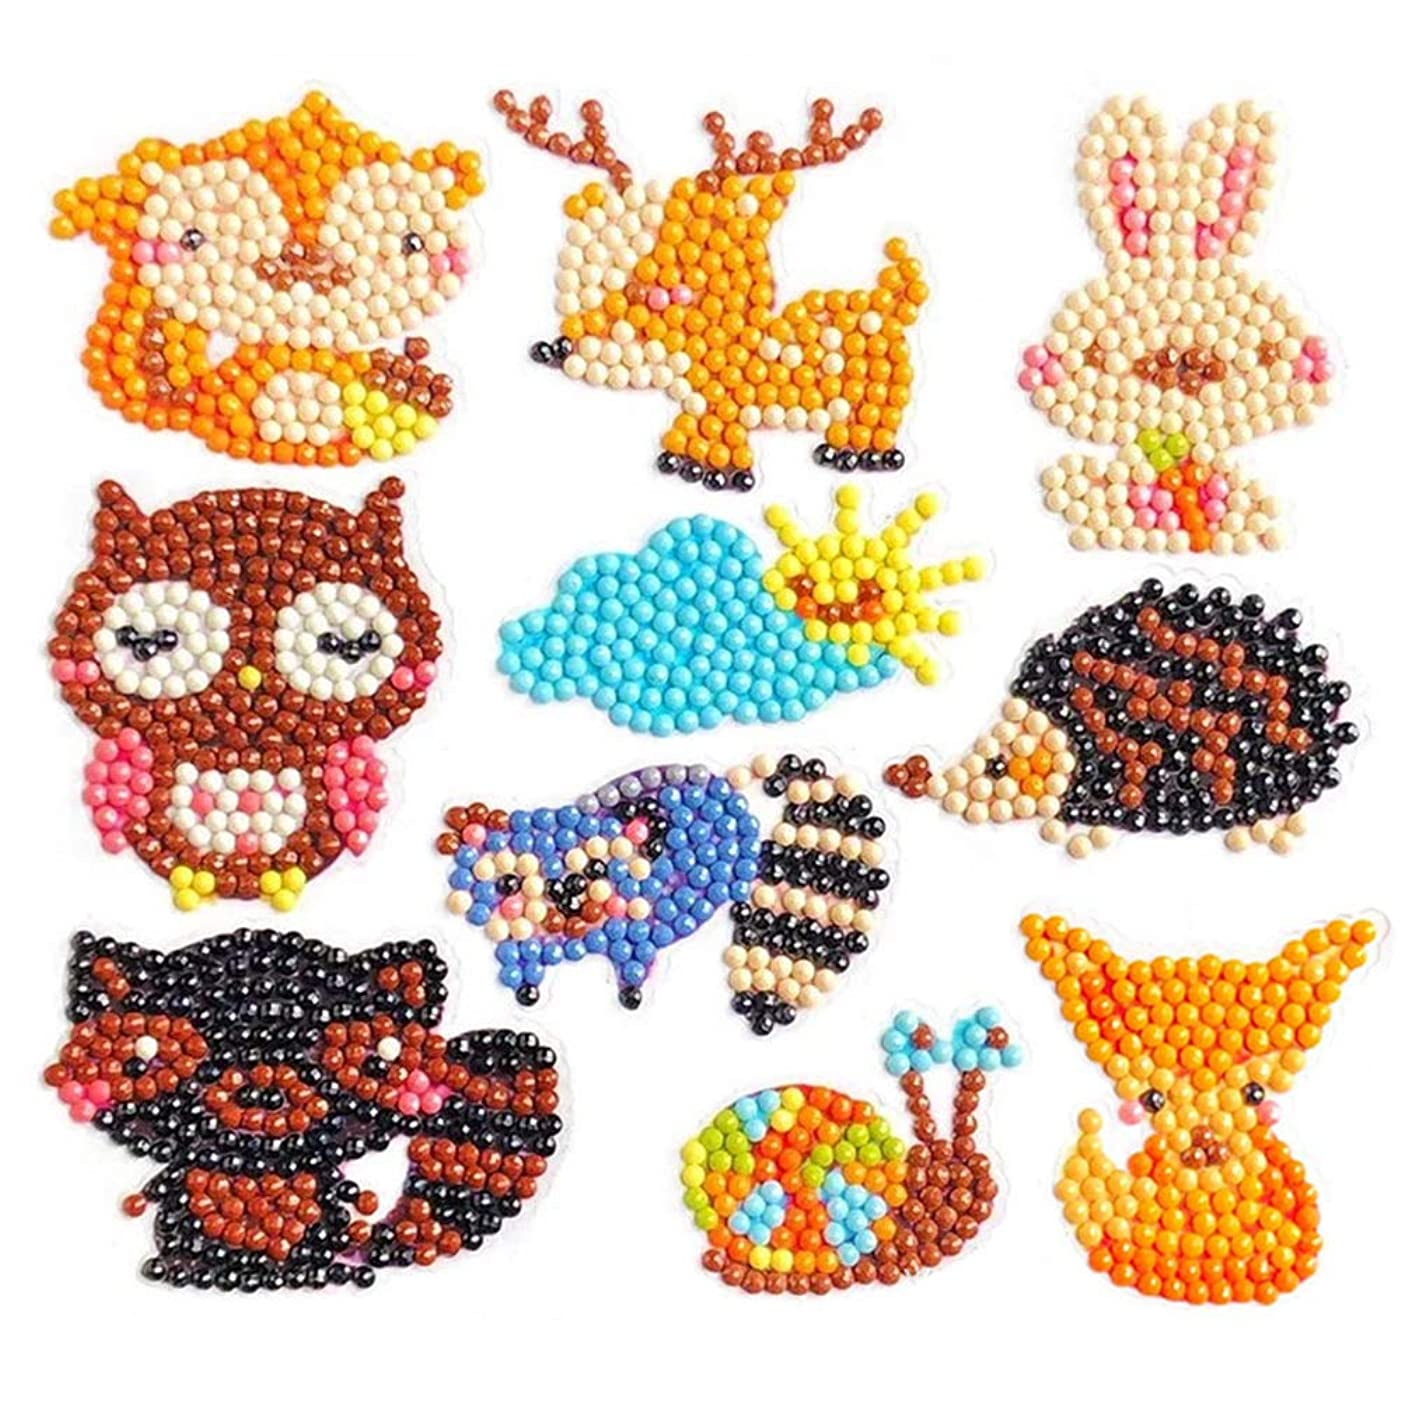 Lystin Diamond Painting Kits 5D DIY Diamond Dotz Kits Paint by Numbers Handmade Sticker Arts and Crafts Stick Paint with Diamonds for Kids and Adult Beginners (Animal Serial)